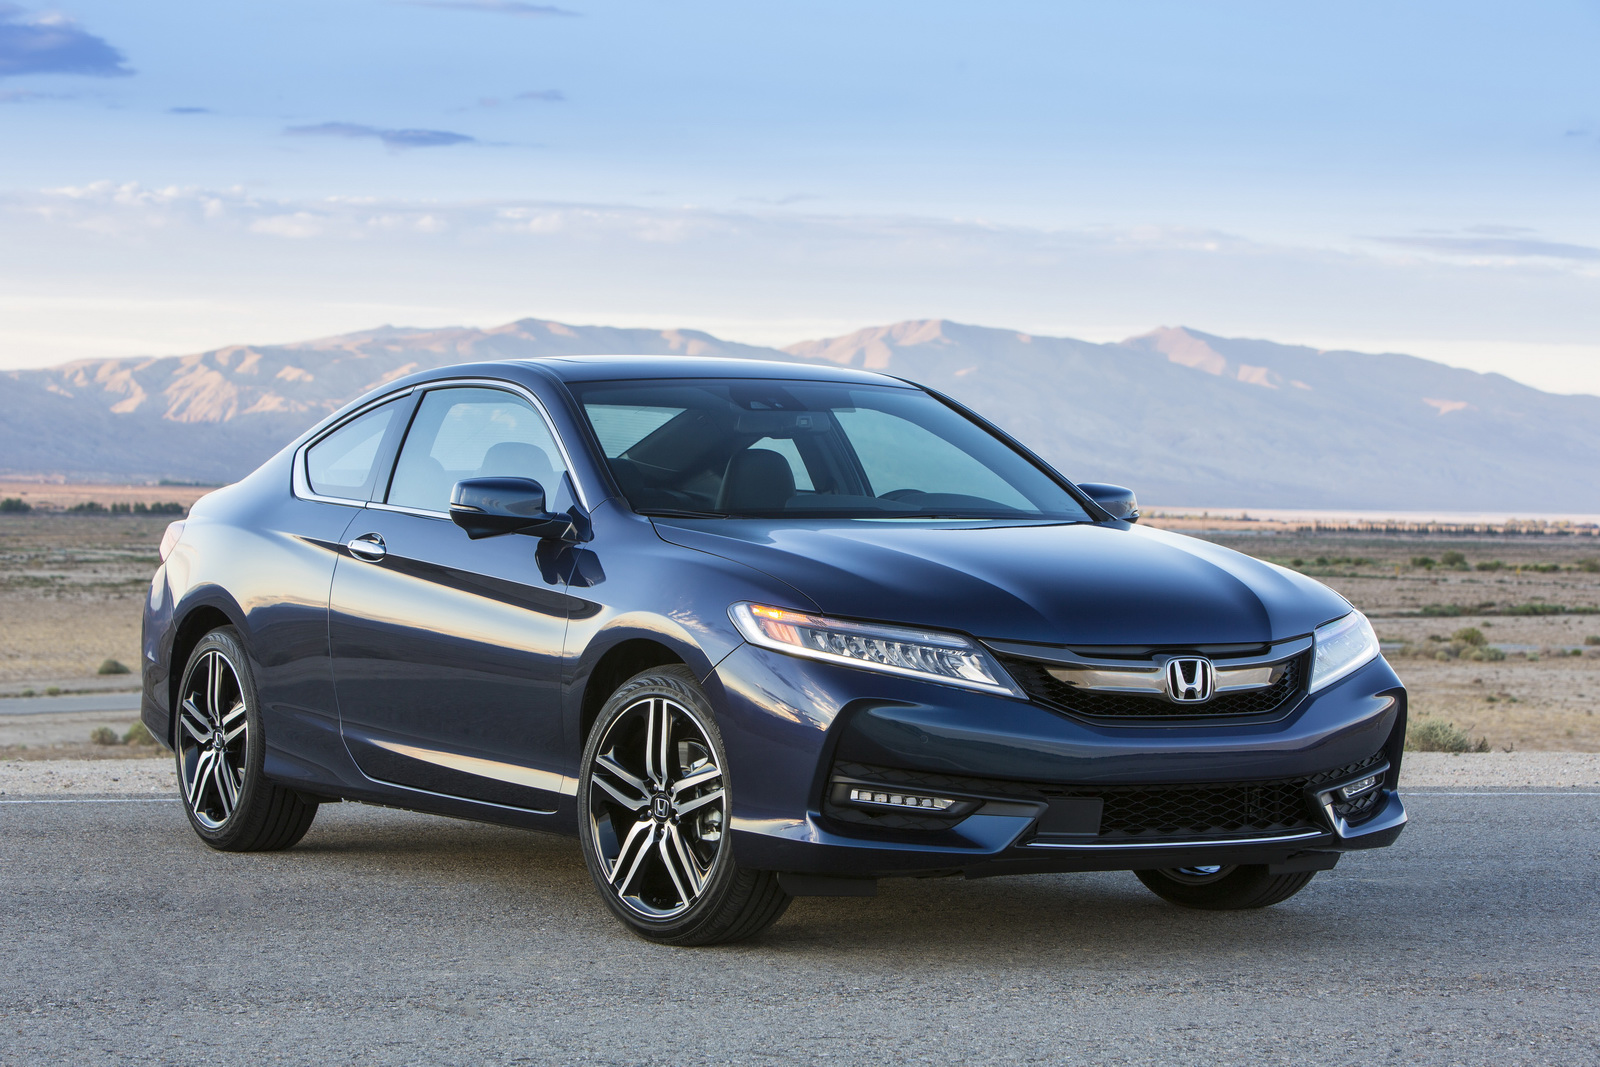 2016 honda accord coupe facelift holds both visual and mechanical upgrades autoevolution. Black Bedroom Furniture Sets. Home Design Ideas